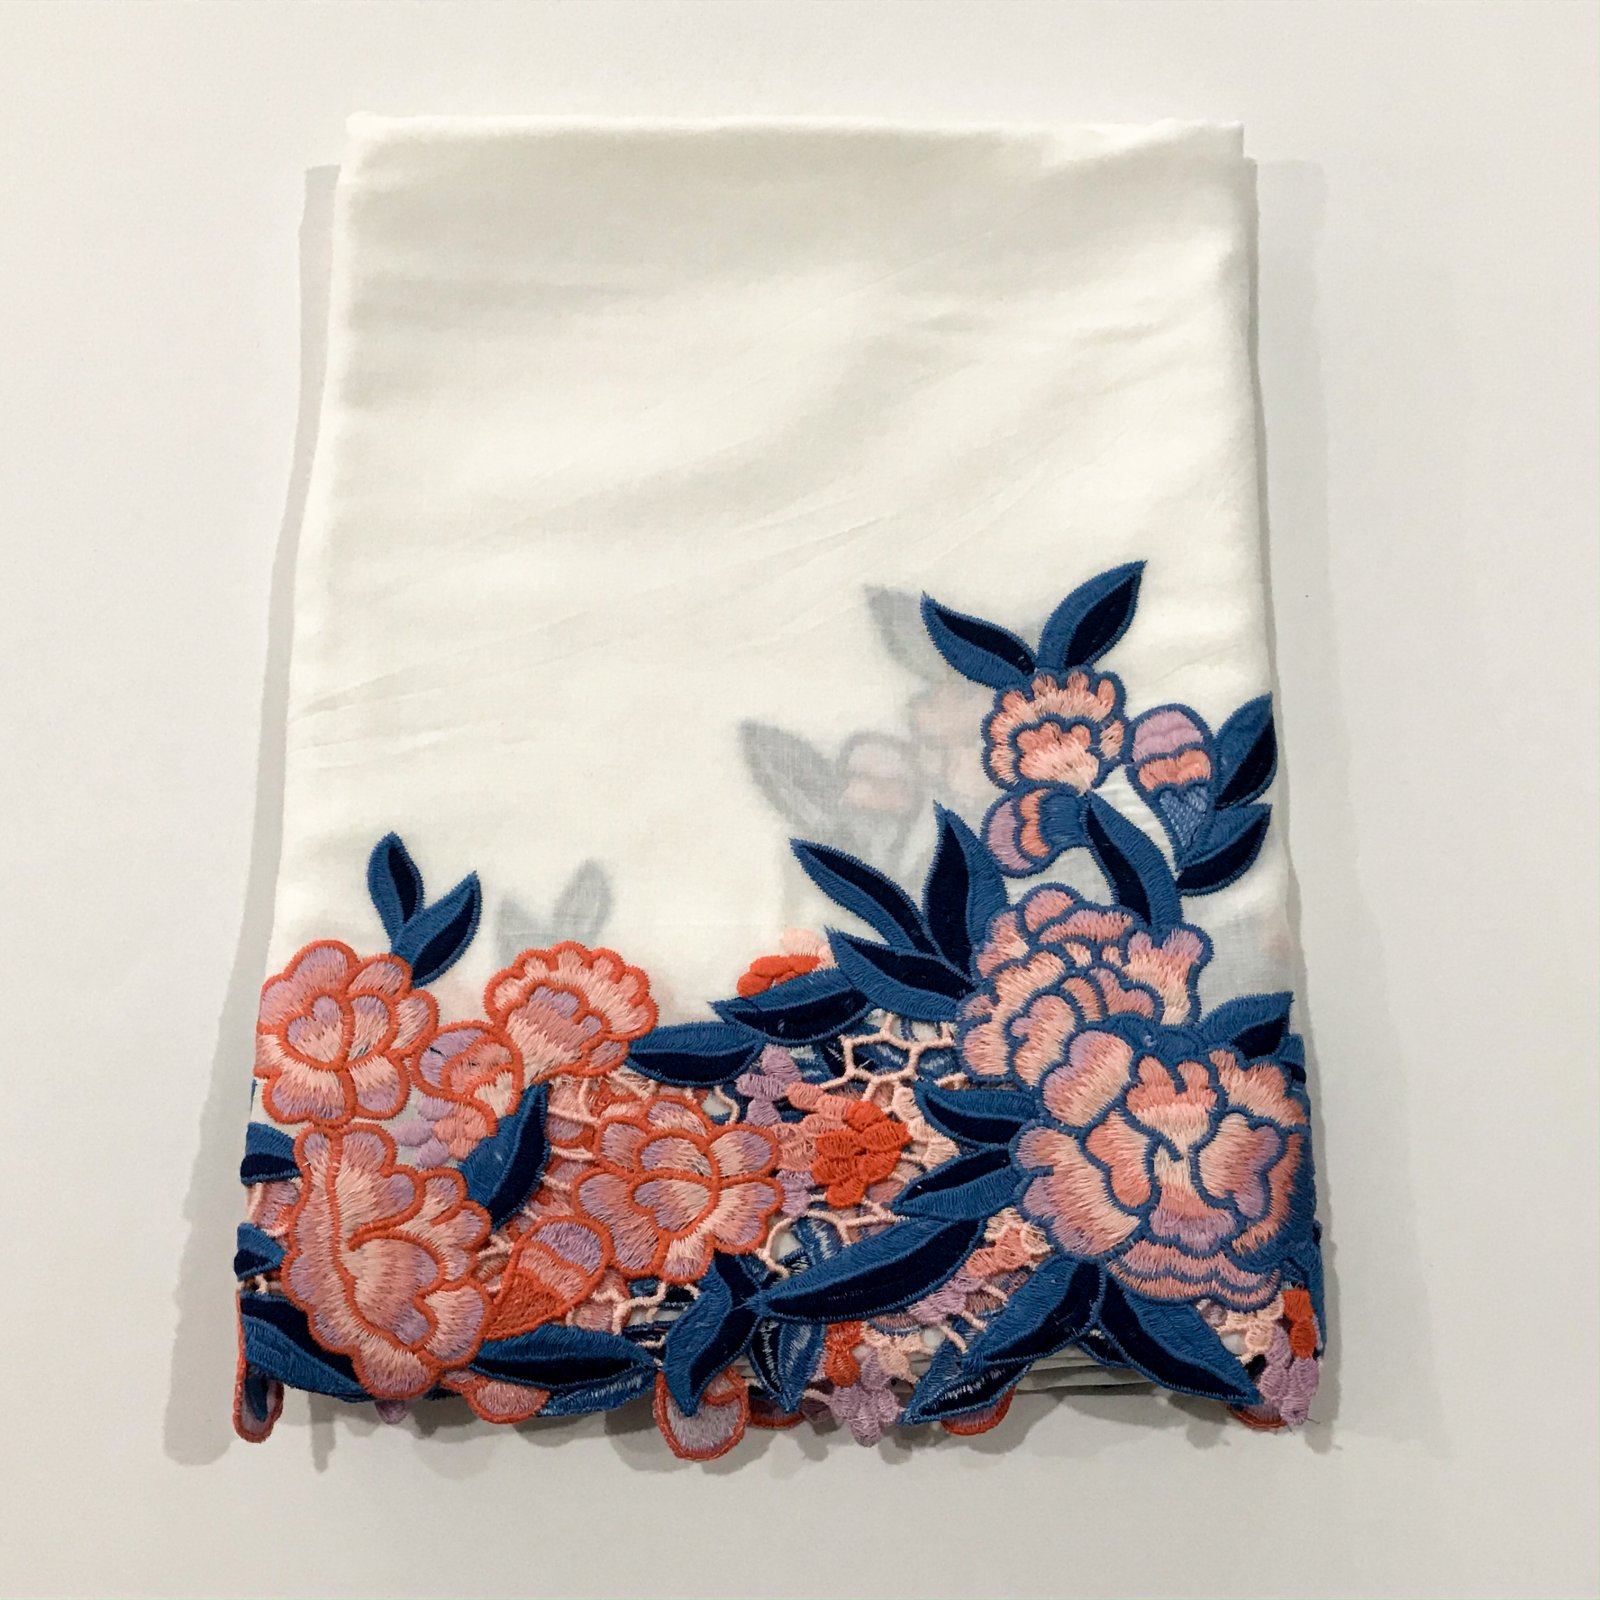 Embroidered Border Rayon - 2 yards